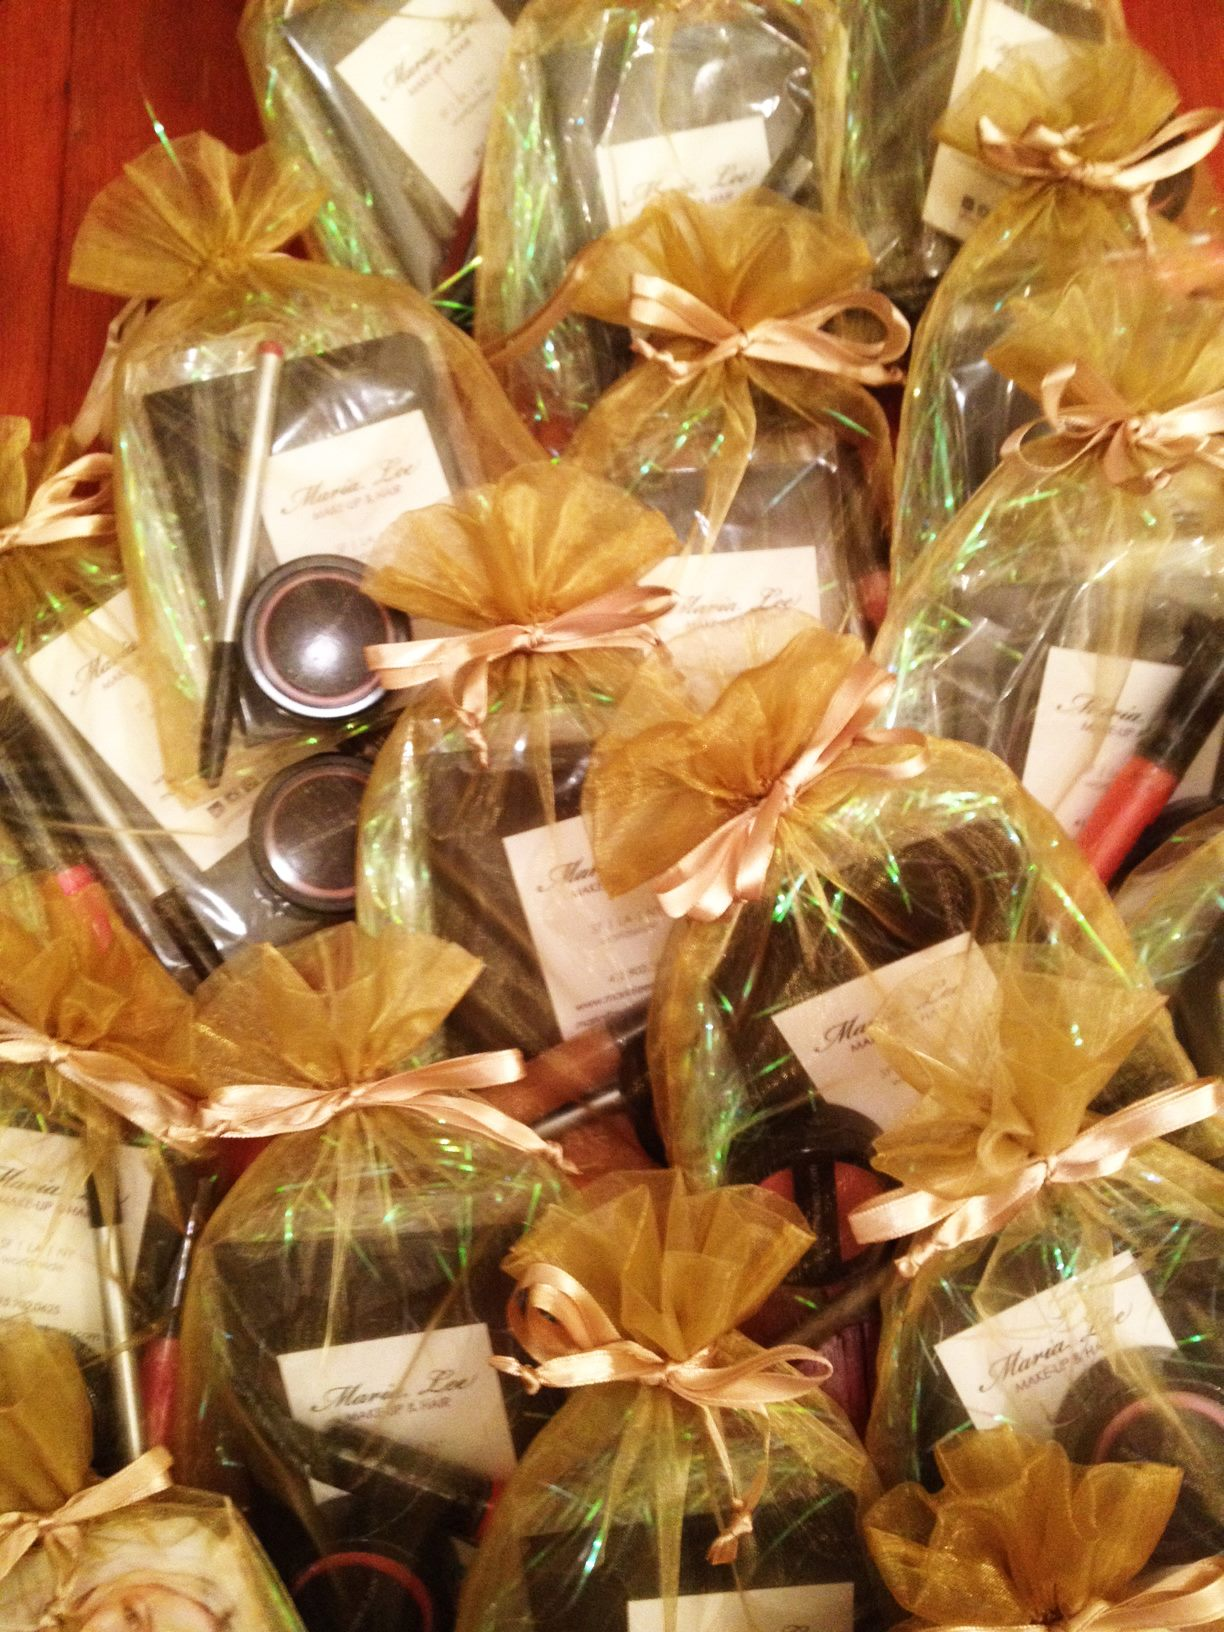 Gift bags my assistant Jessica and I put together. Each bag contained some of my favorite products to use in my studio! I selected an assortment of lip liners, cream blushes and lipsticks in various colors.